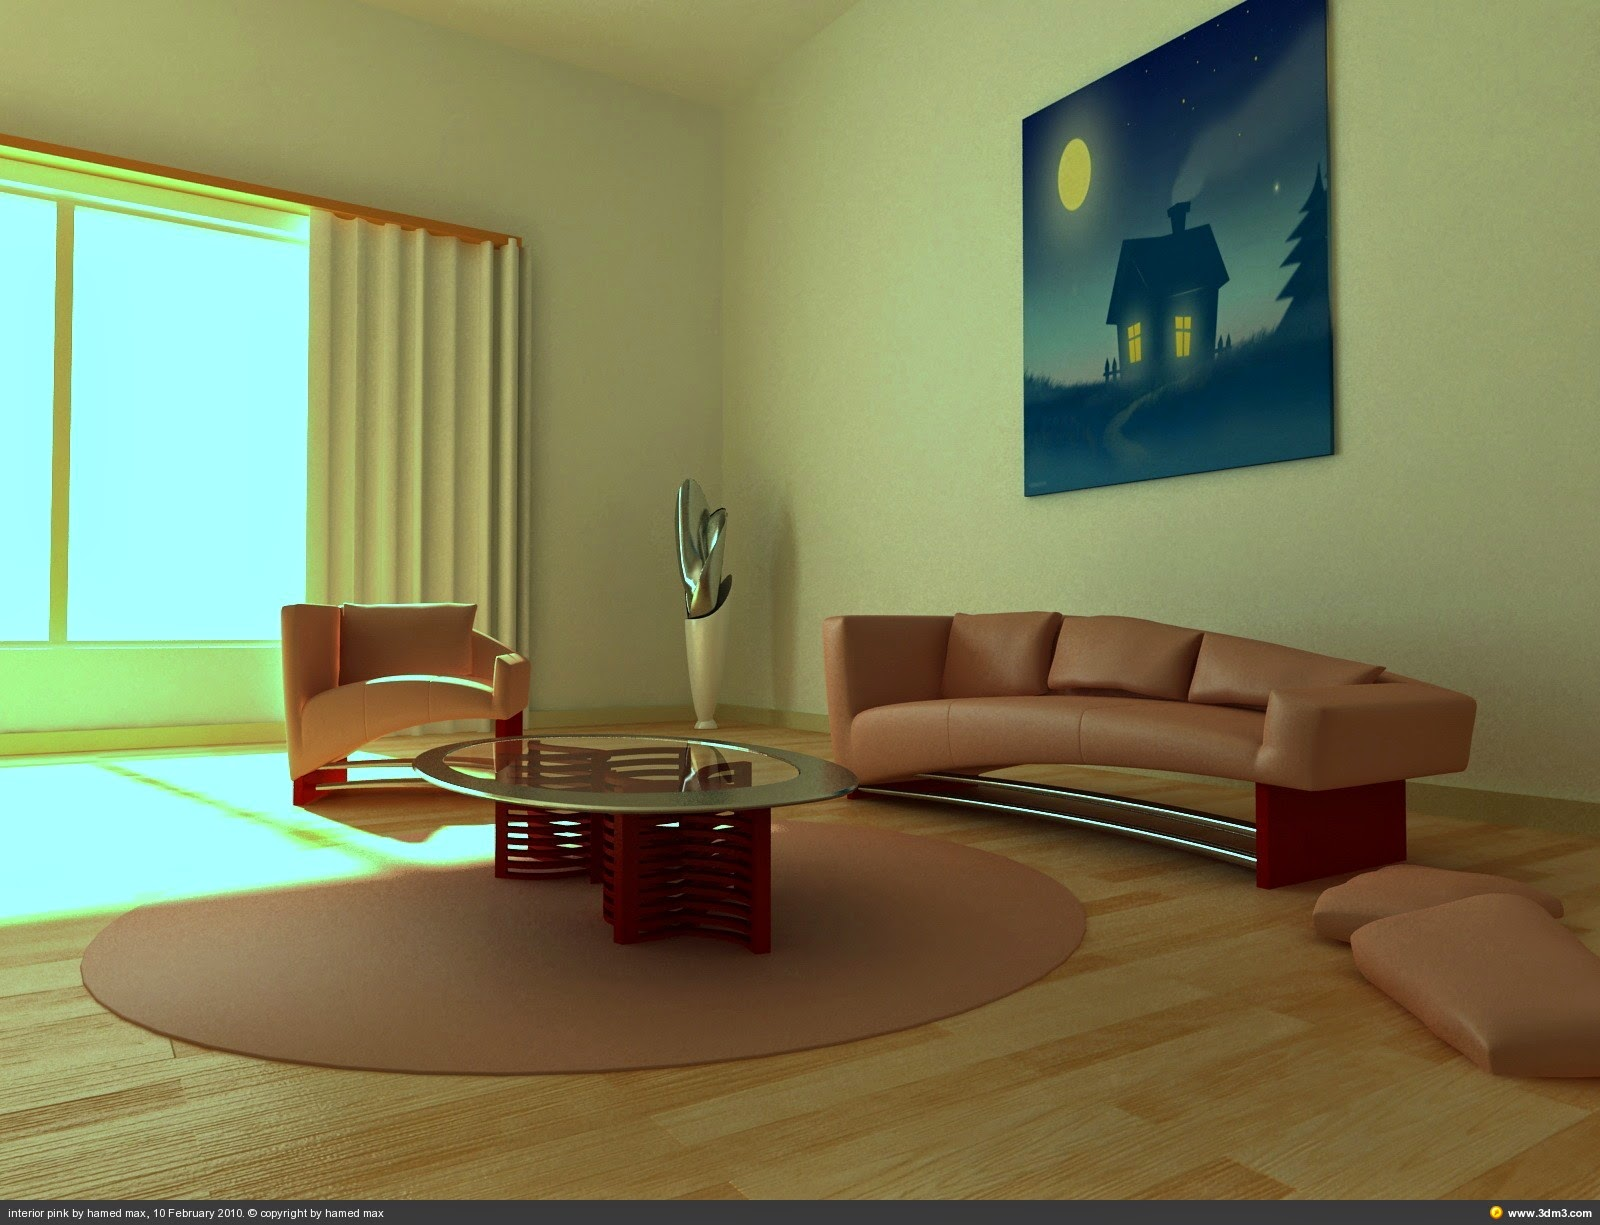 Foundation dezin decor 3ds max interior models for Decoration 3ds max